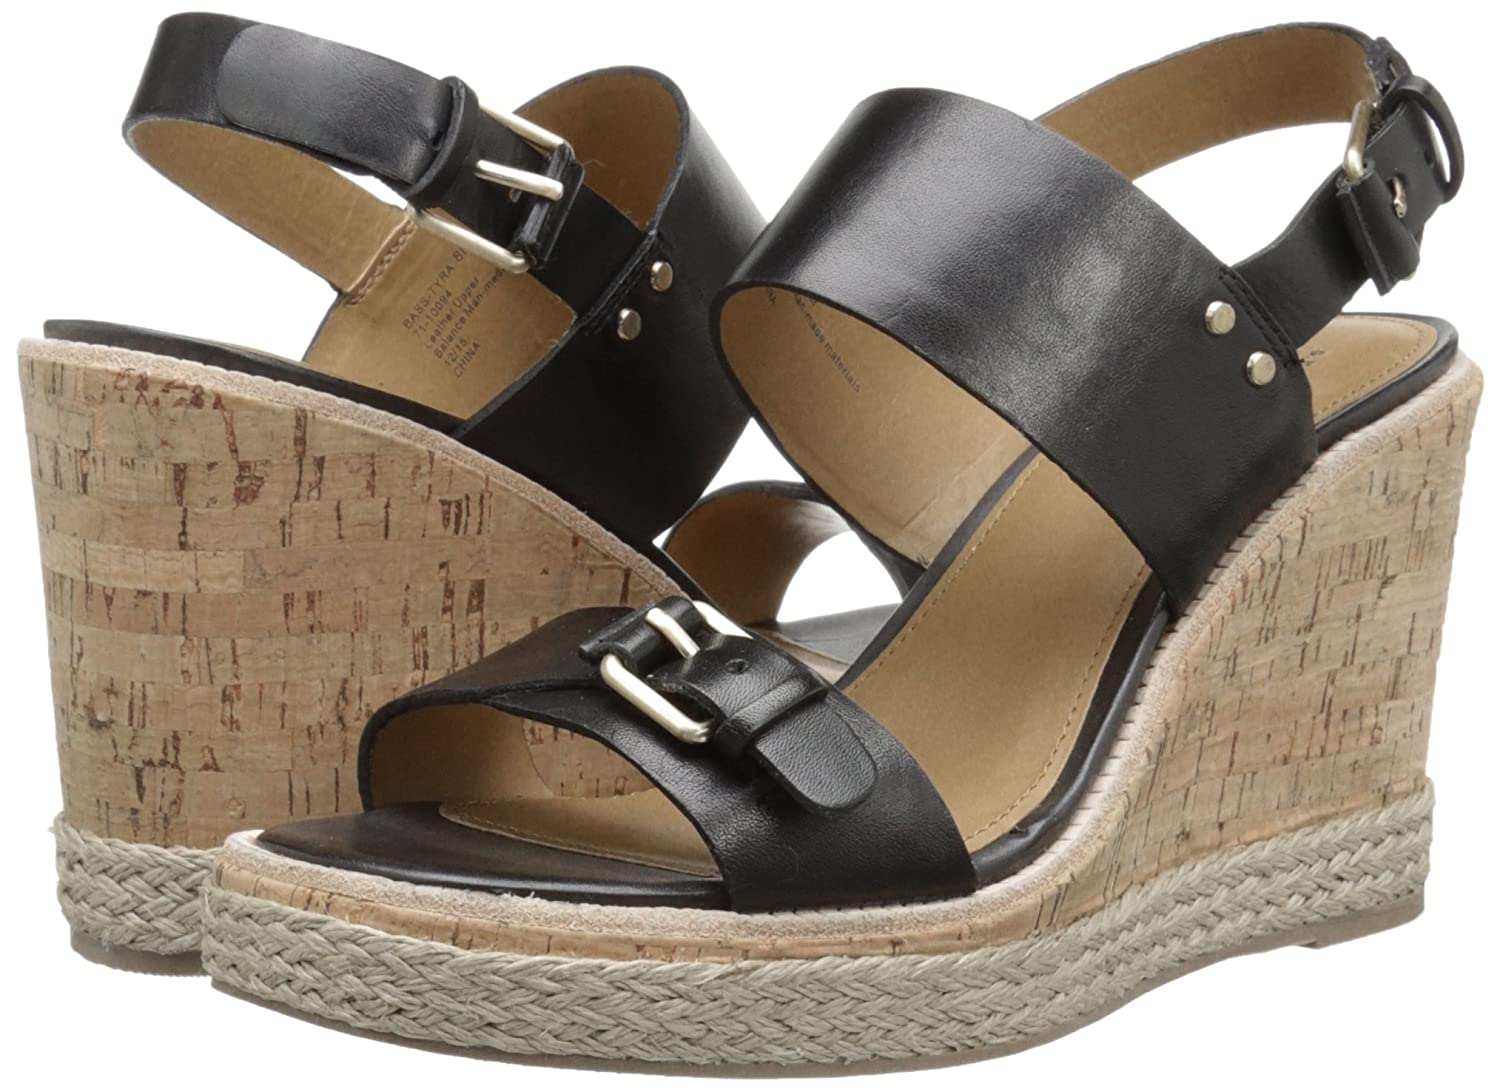 83ae44e51305 Women s Tyra Wedge Sandal